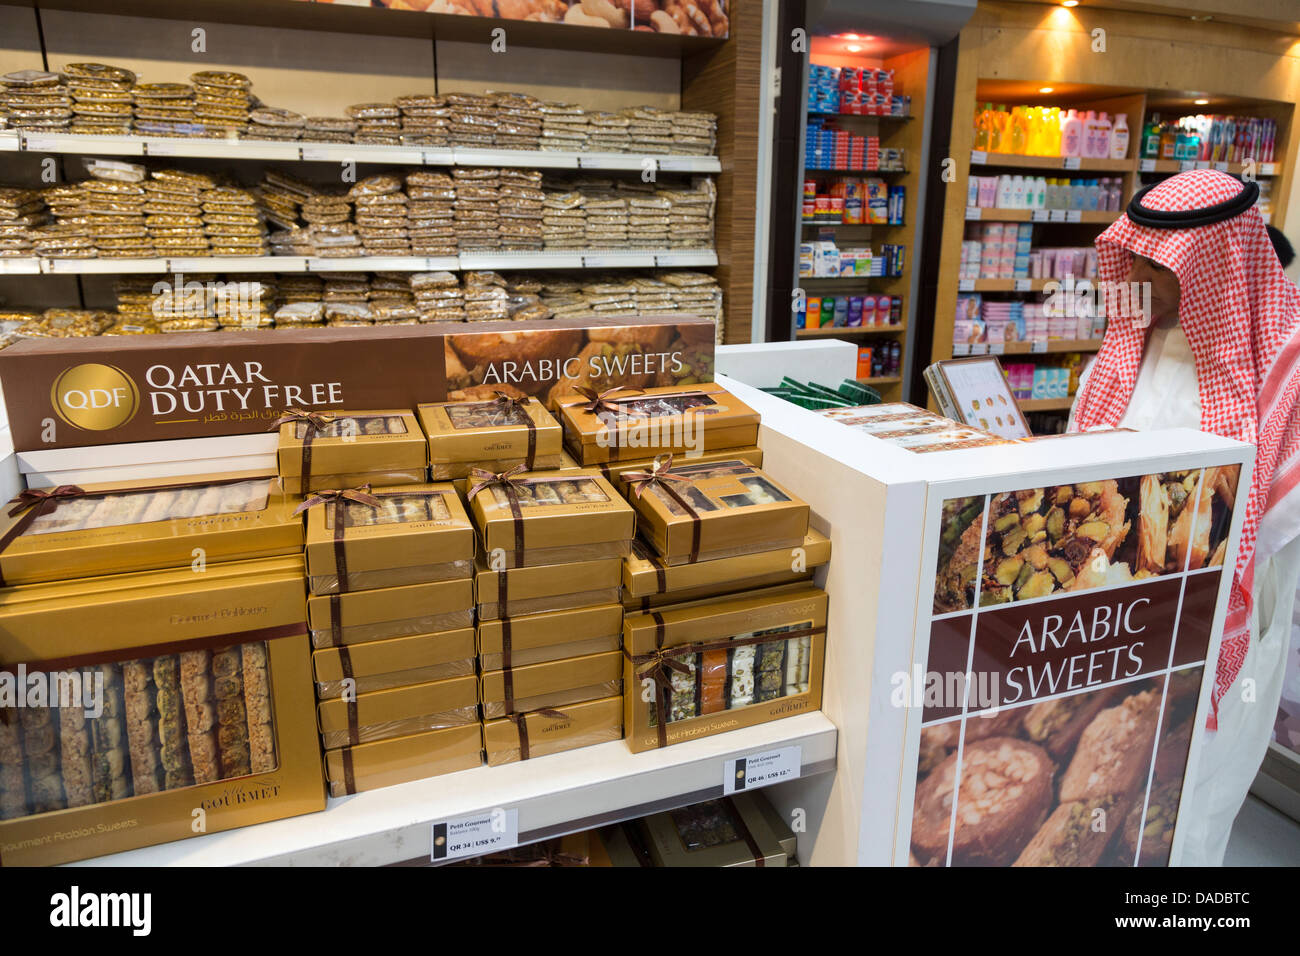 Arabic gourmet sweets for sale, duty free shop, Doha airport, Qatar - Stock Image